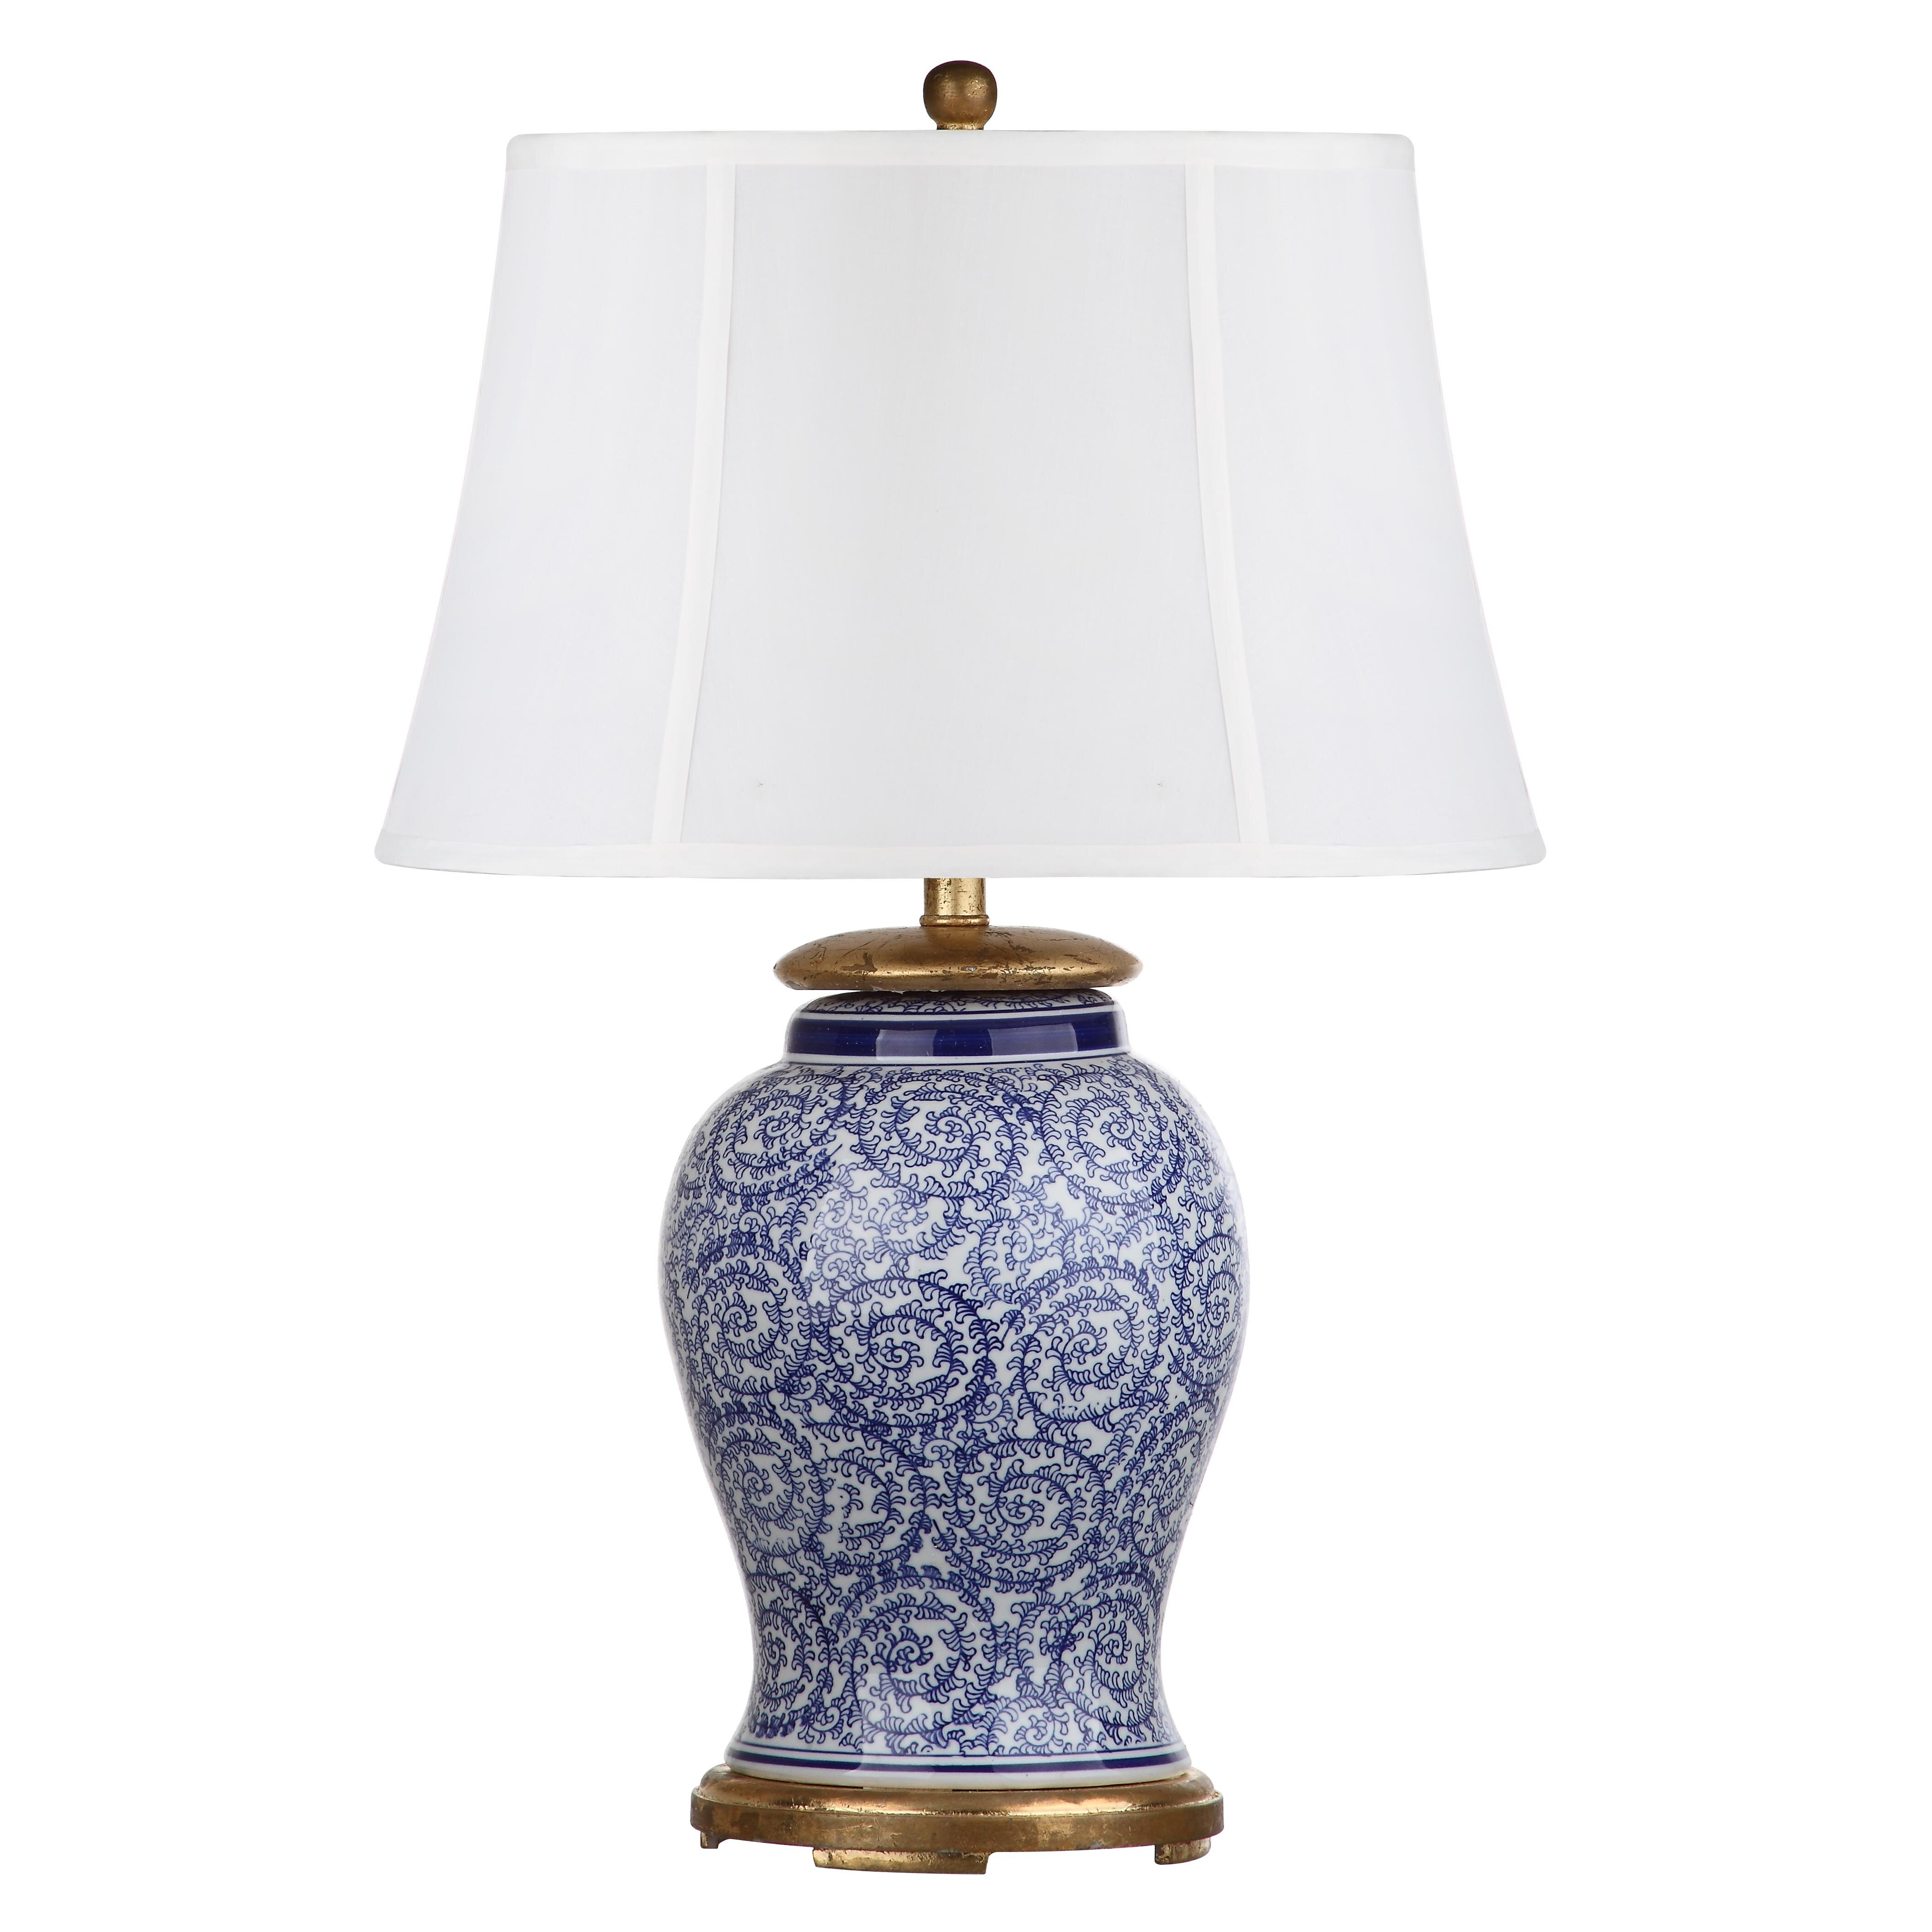 DecoratorsLighting Dalton 285 Table Lamp Amp Reviews